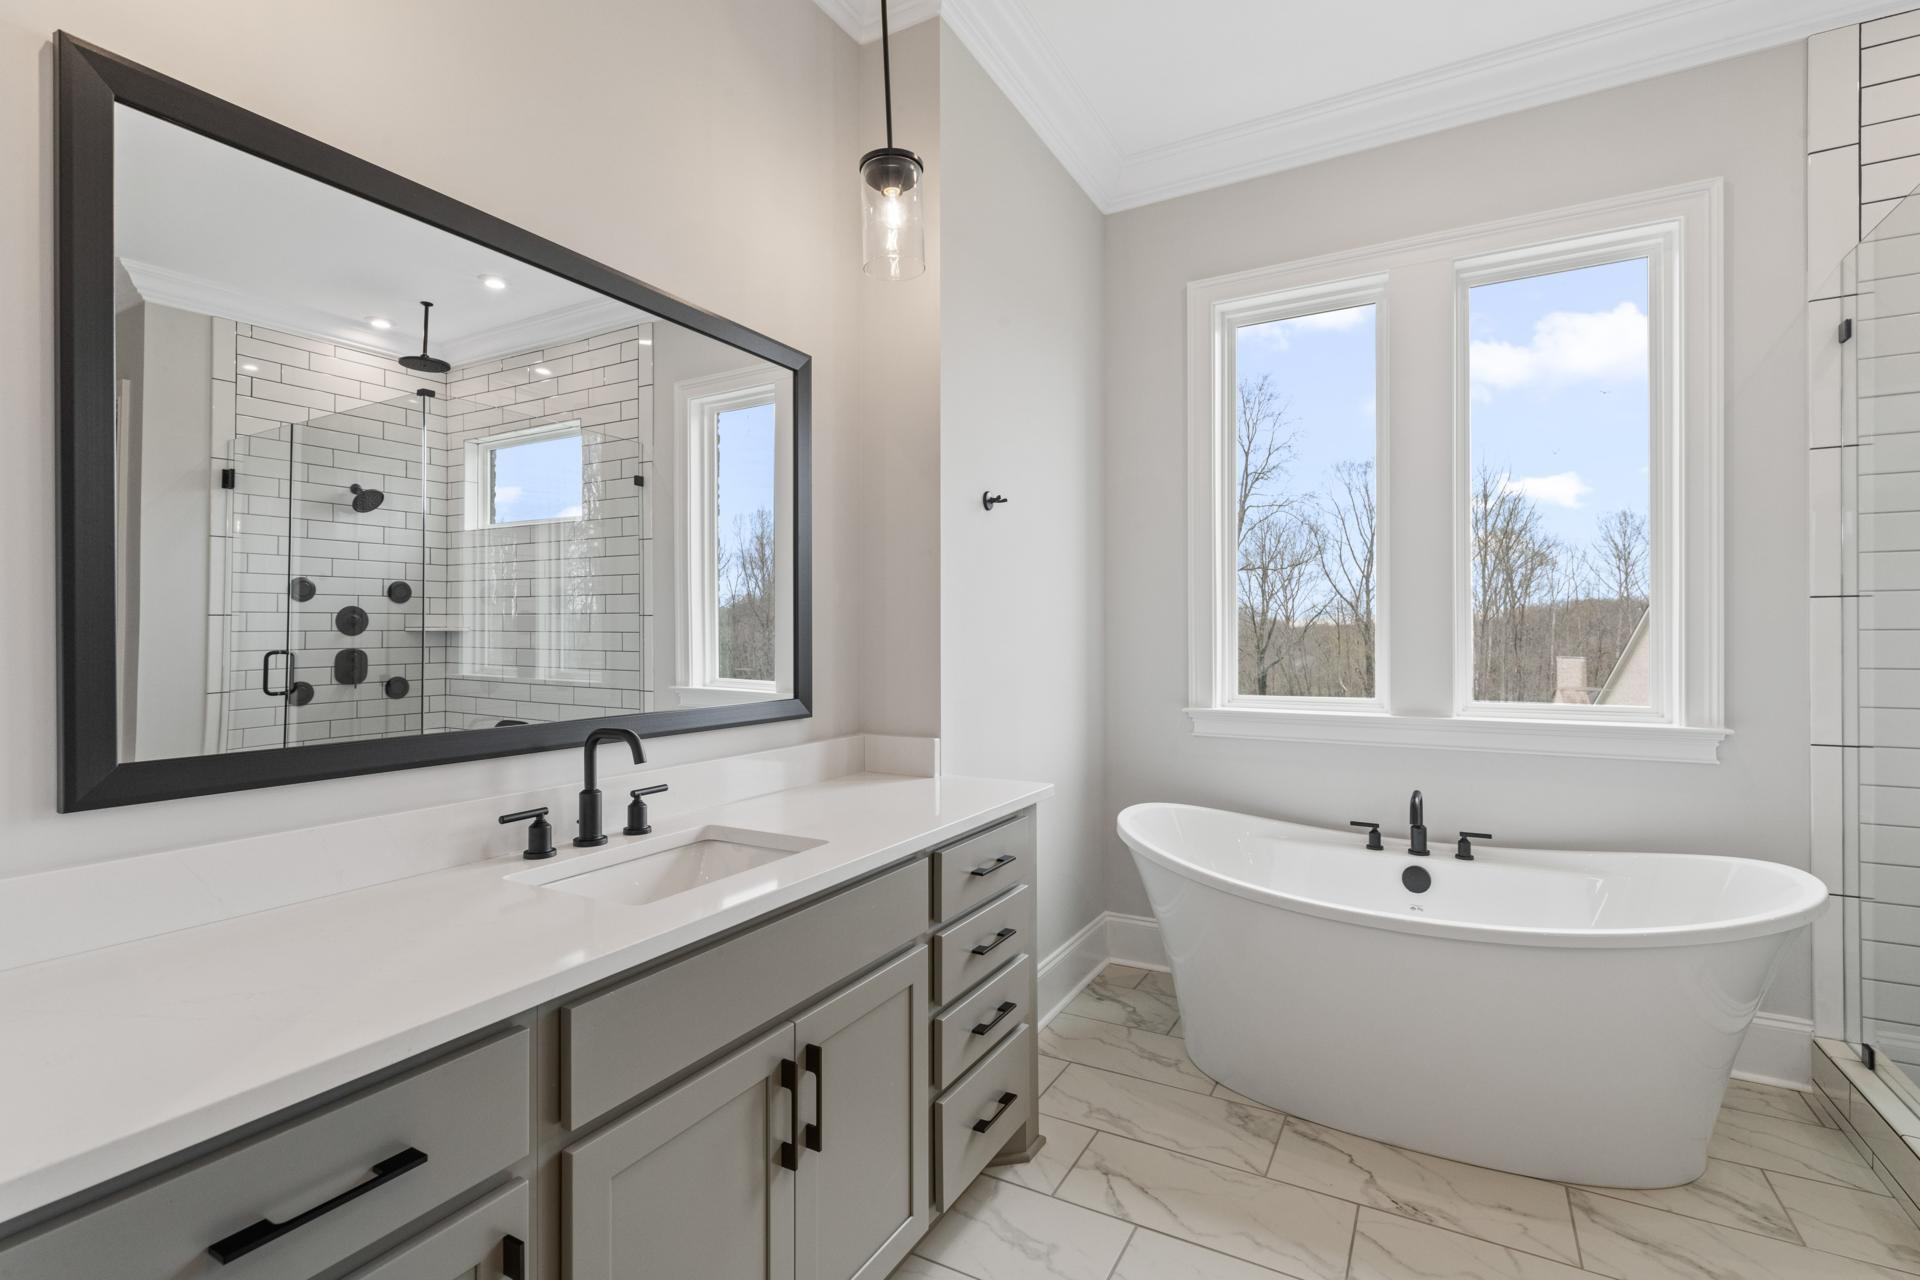 Bathroom featured in the Belvidere By Drees Homes in Nashville, TN